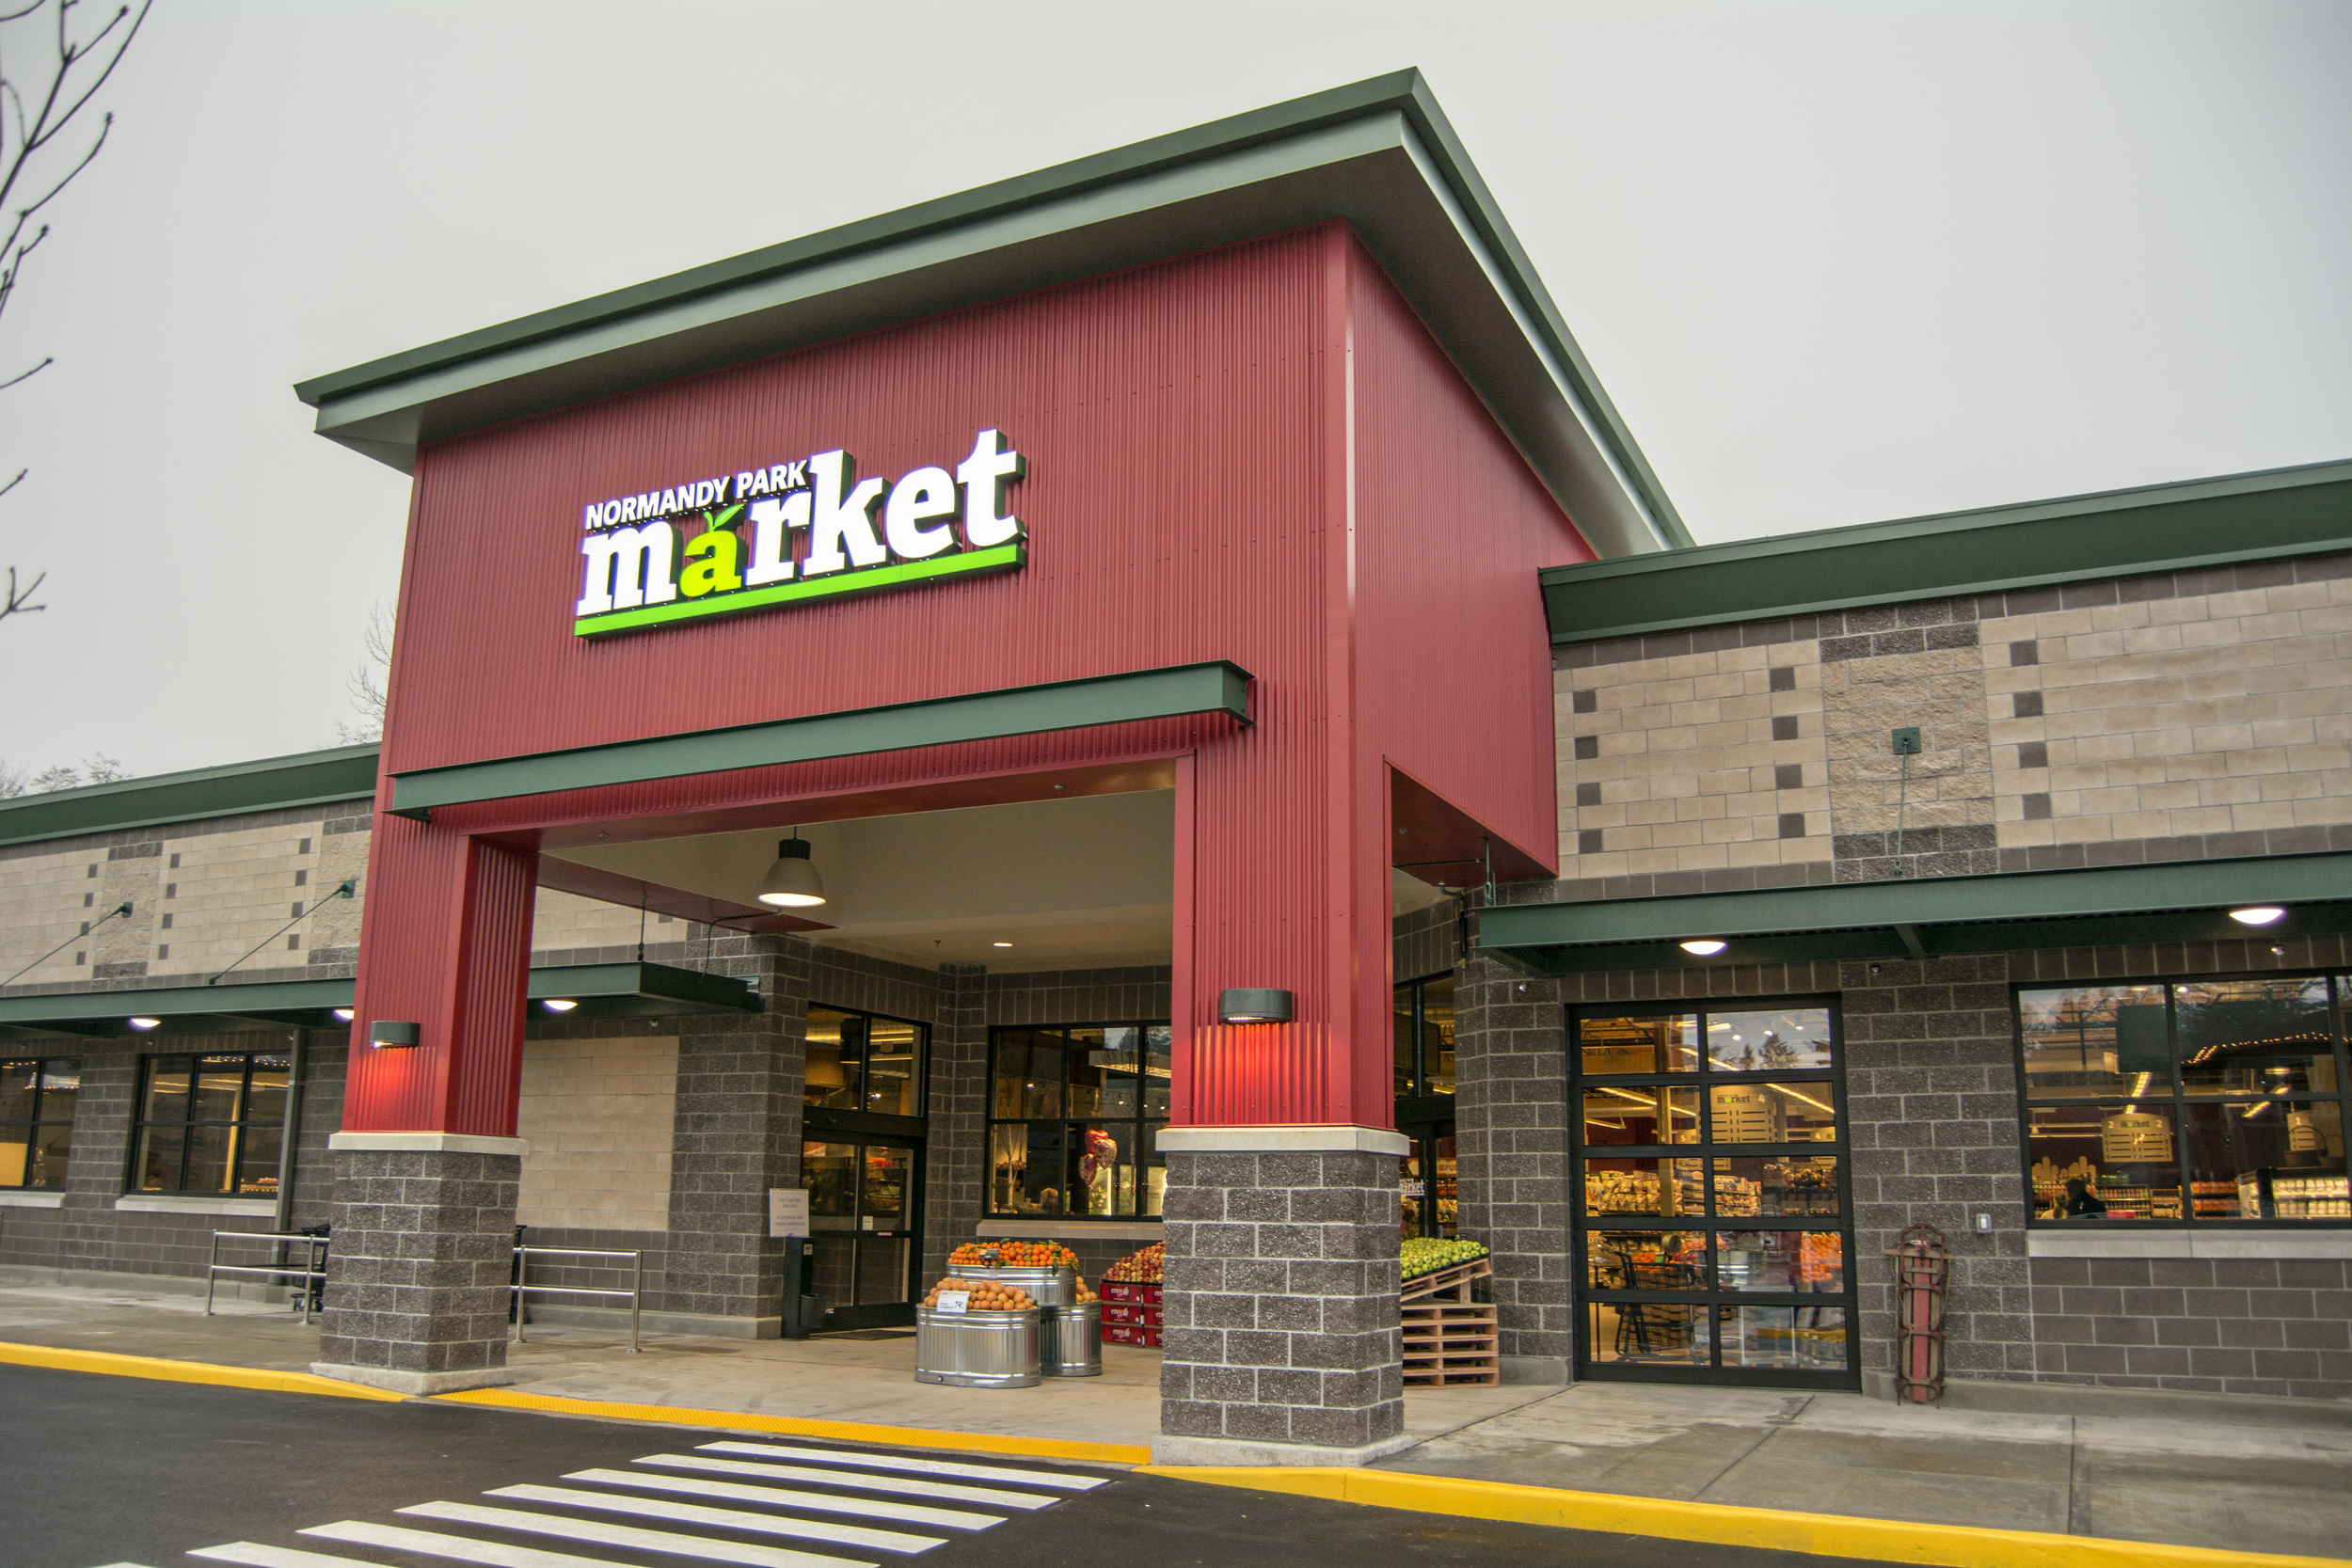 Normandy Park Market located at the Normandy Park Towne Center